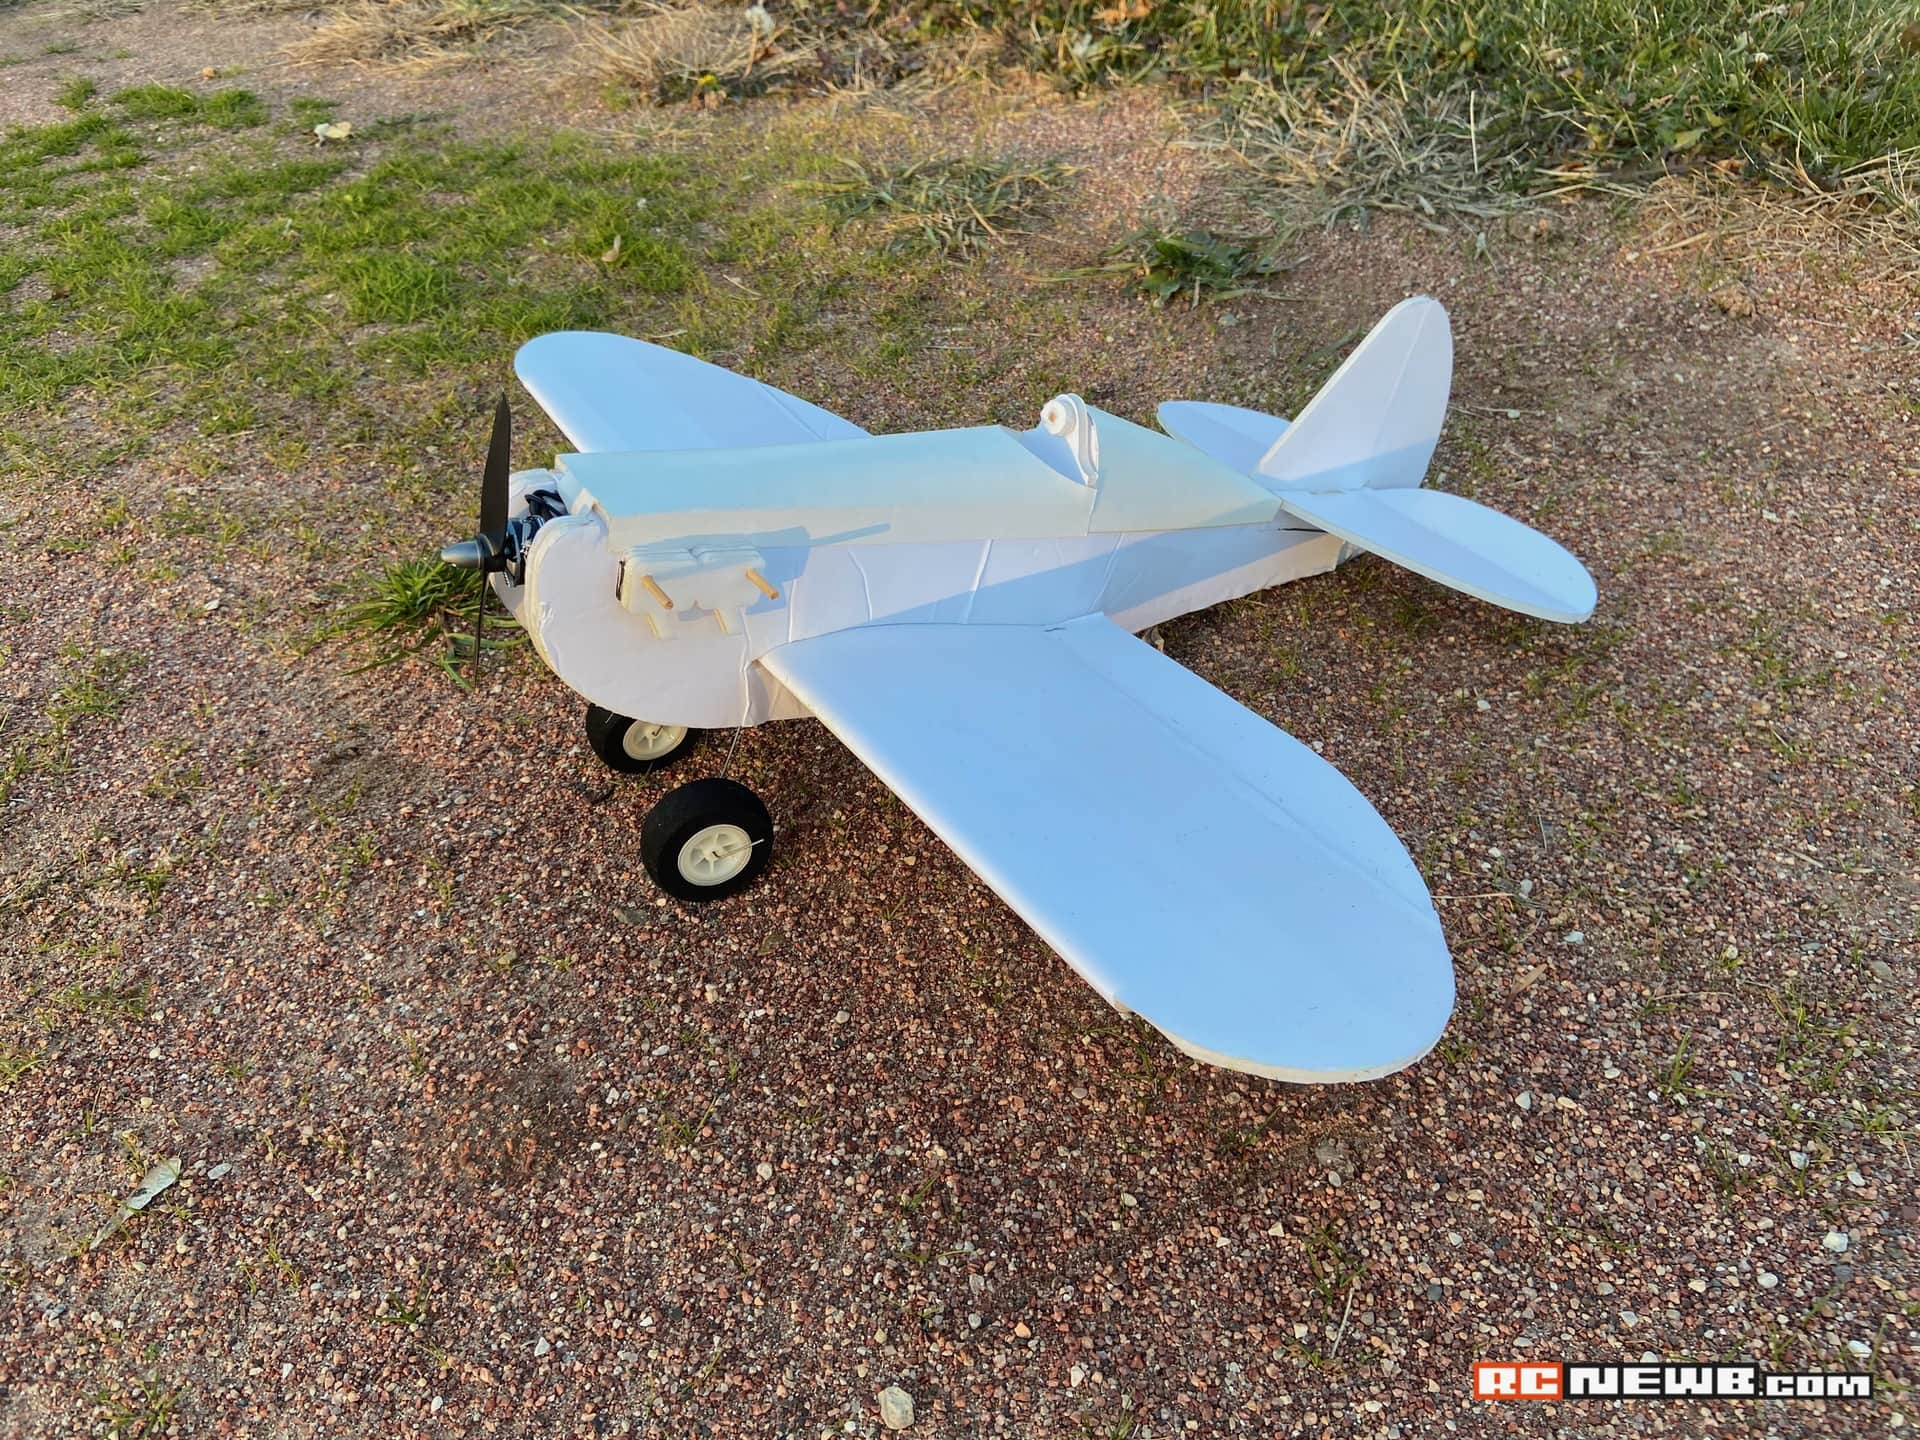 "Review: FliteTest Mini Sportster ""Maker Foam"" R/C Airplane Kit"